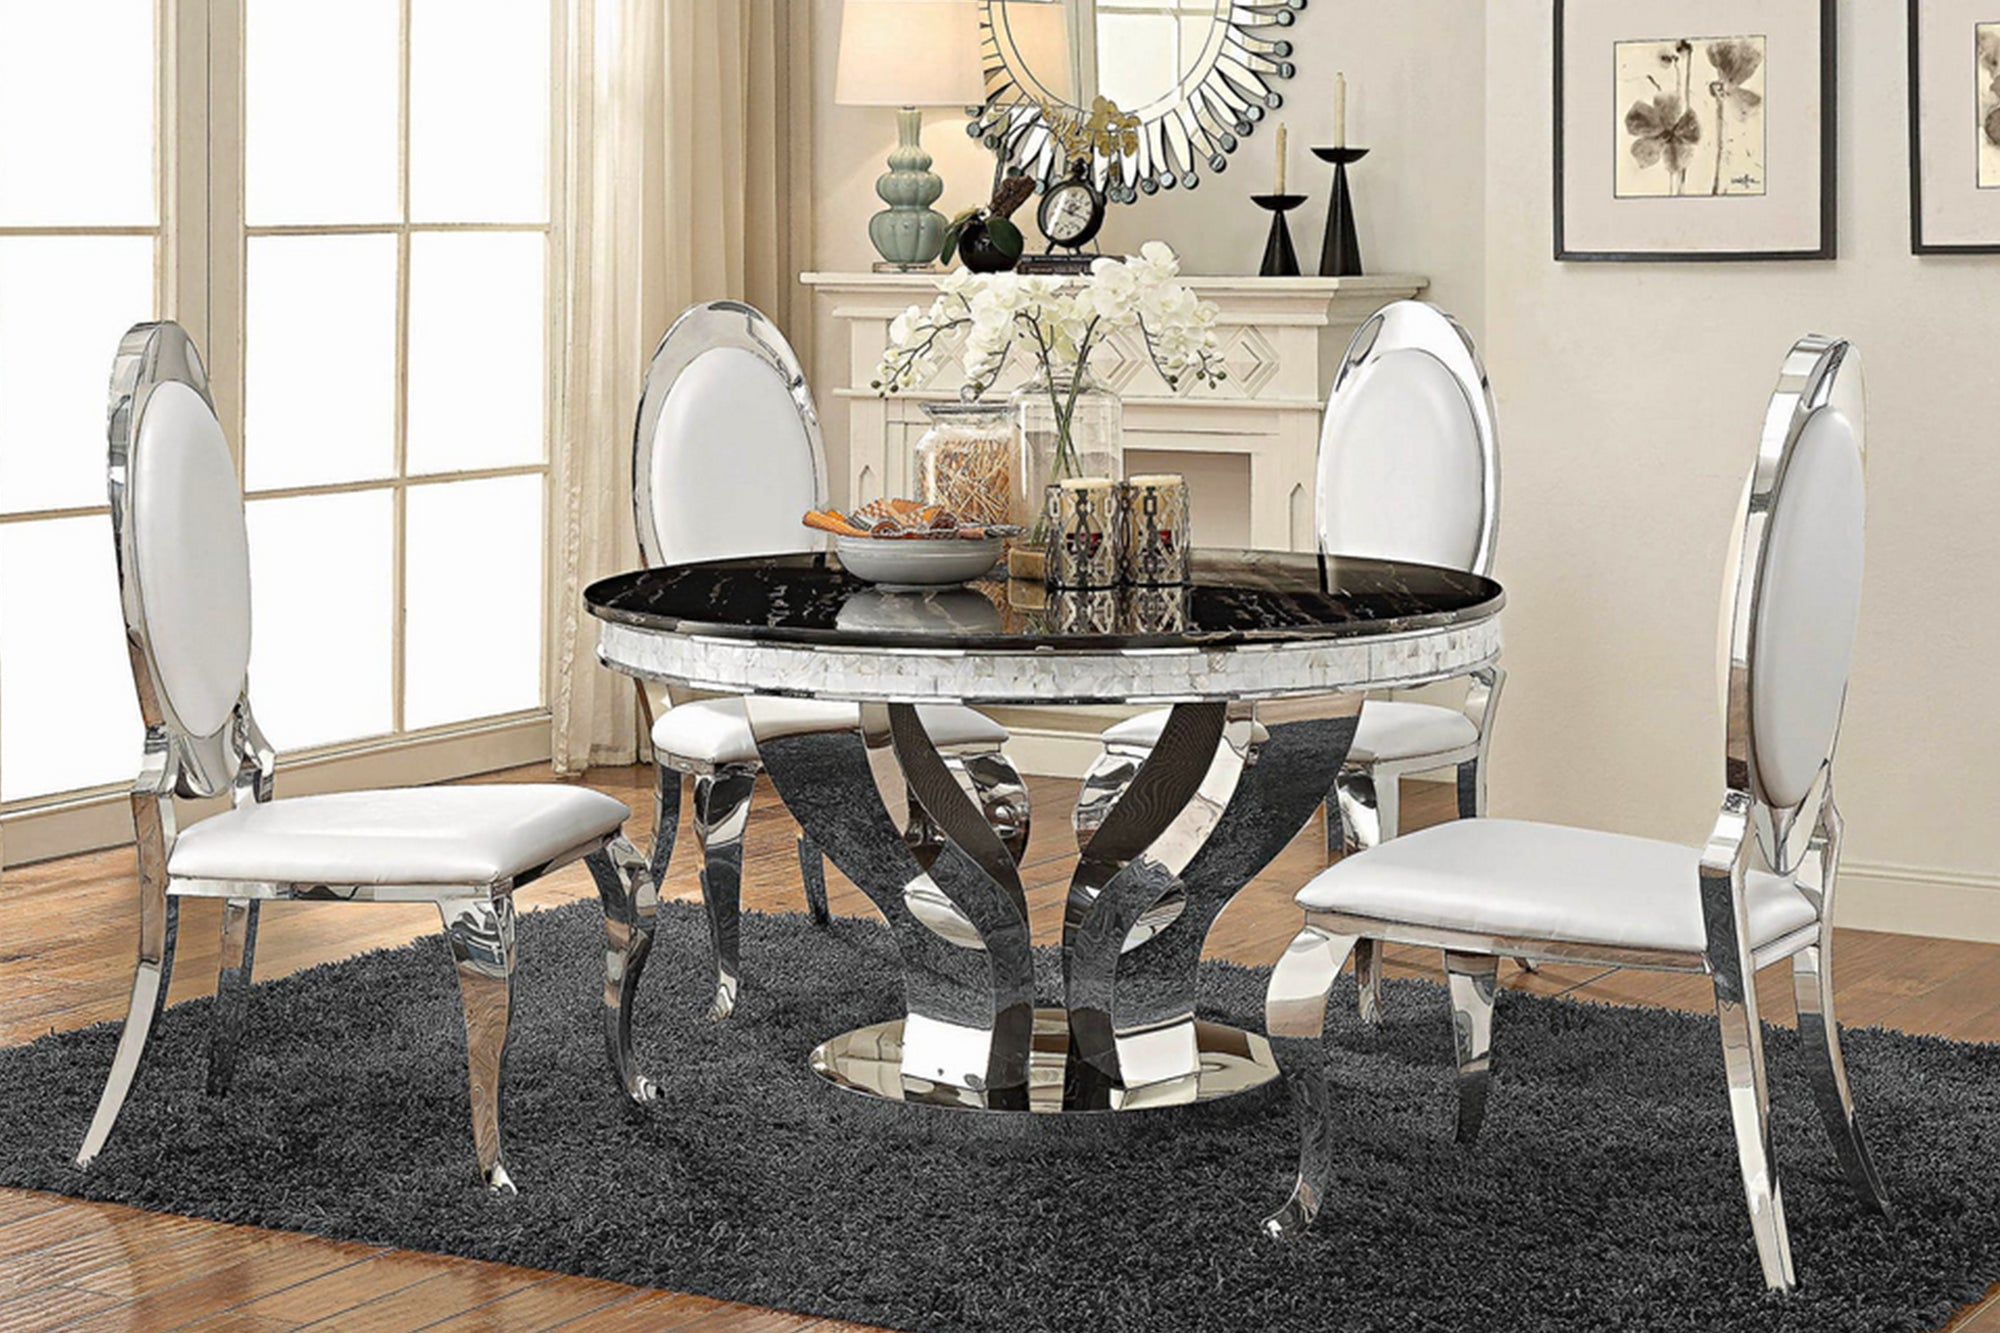 Anchorage Hollywood Glam Silver 5 pcs Dining Set # 18107891